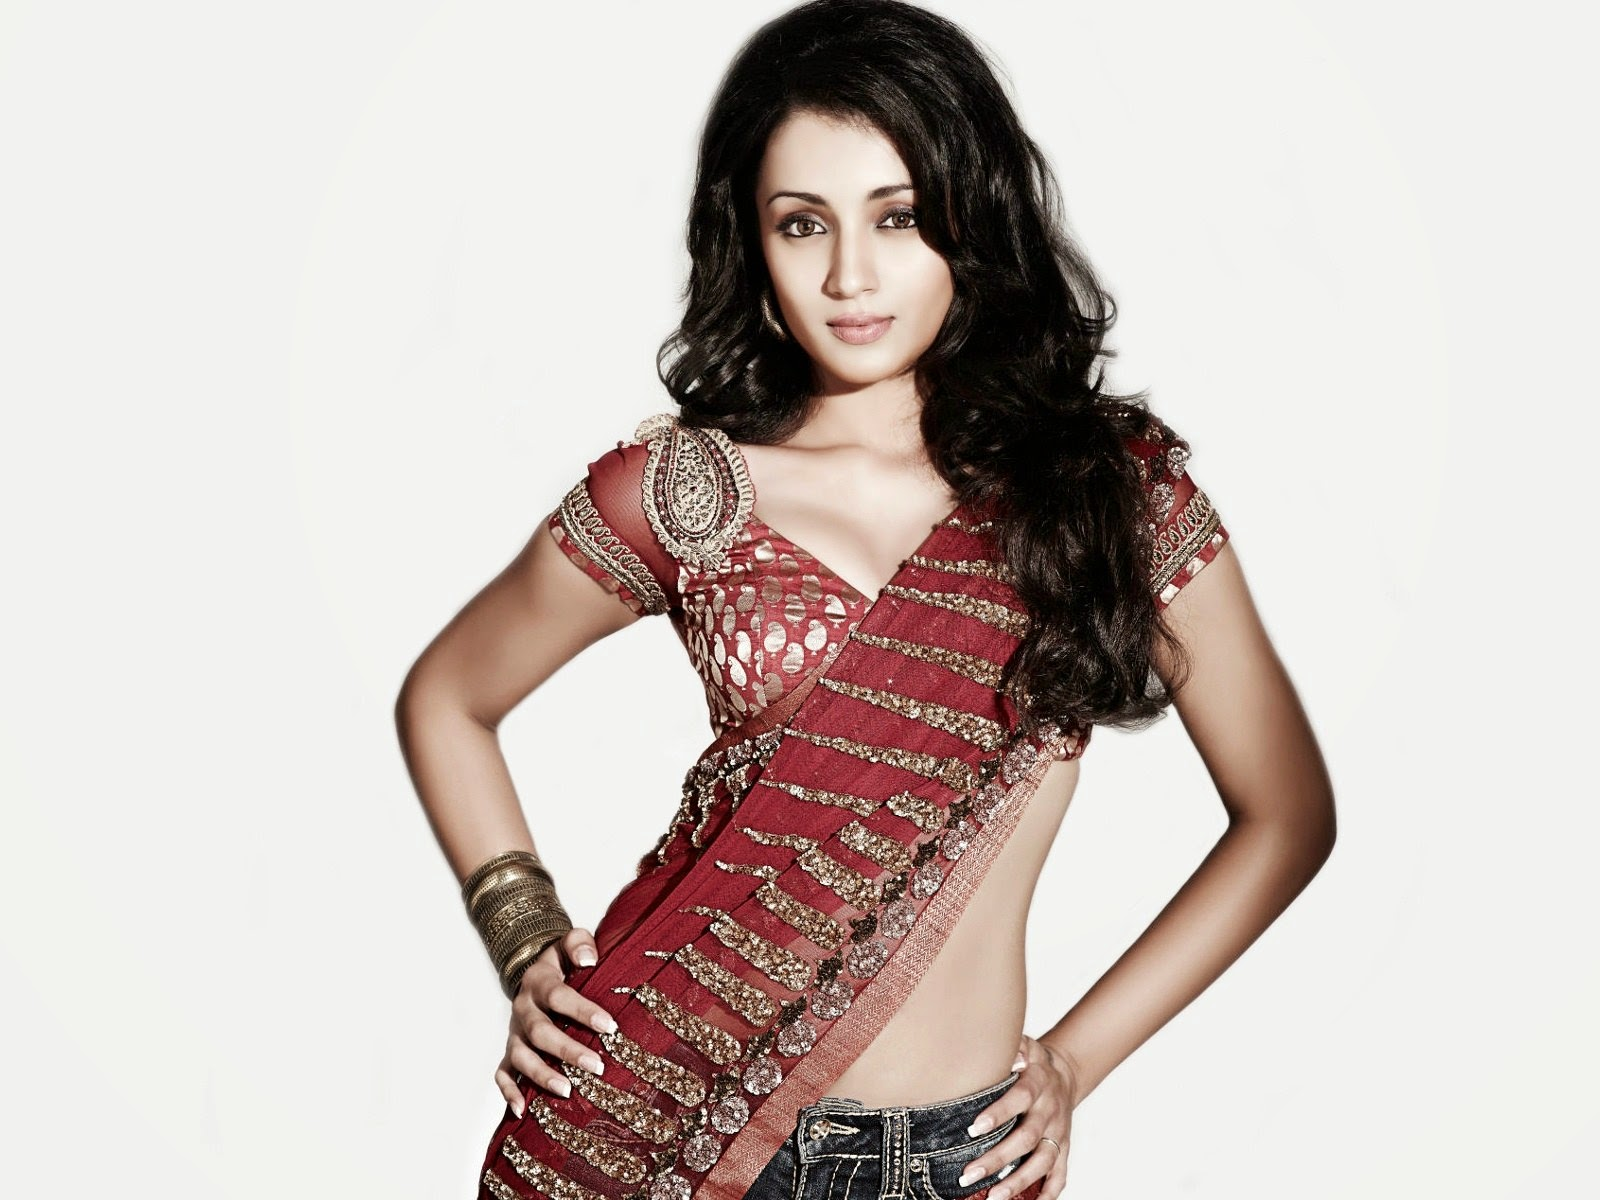 Trisha krishnana Hot Images